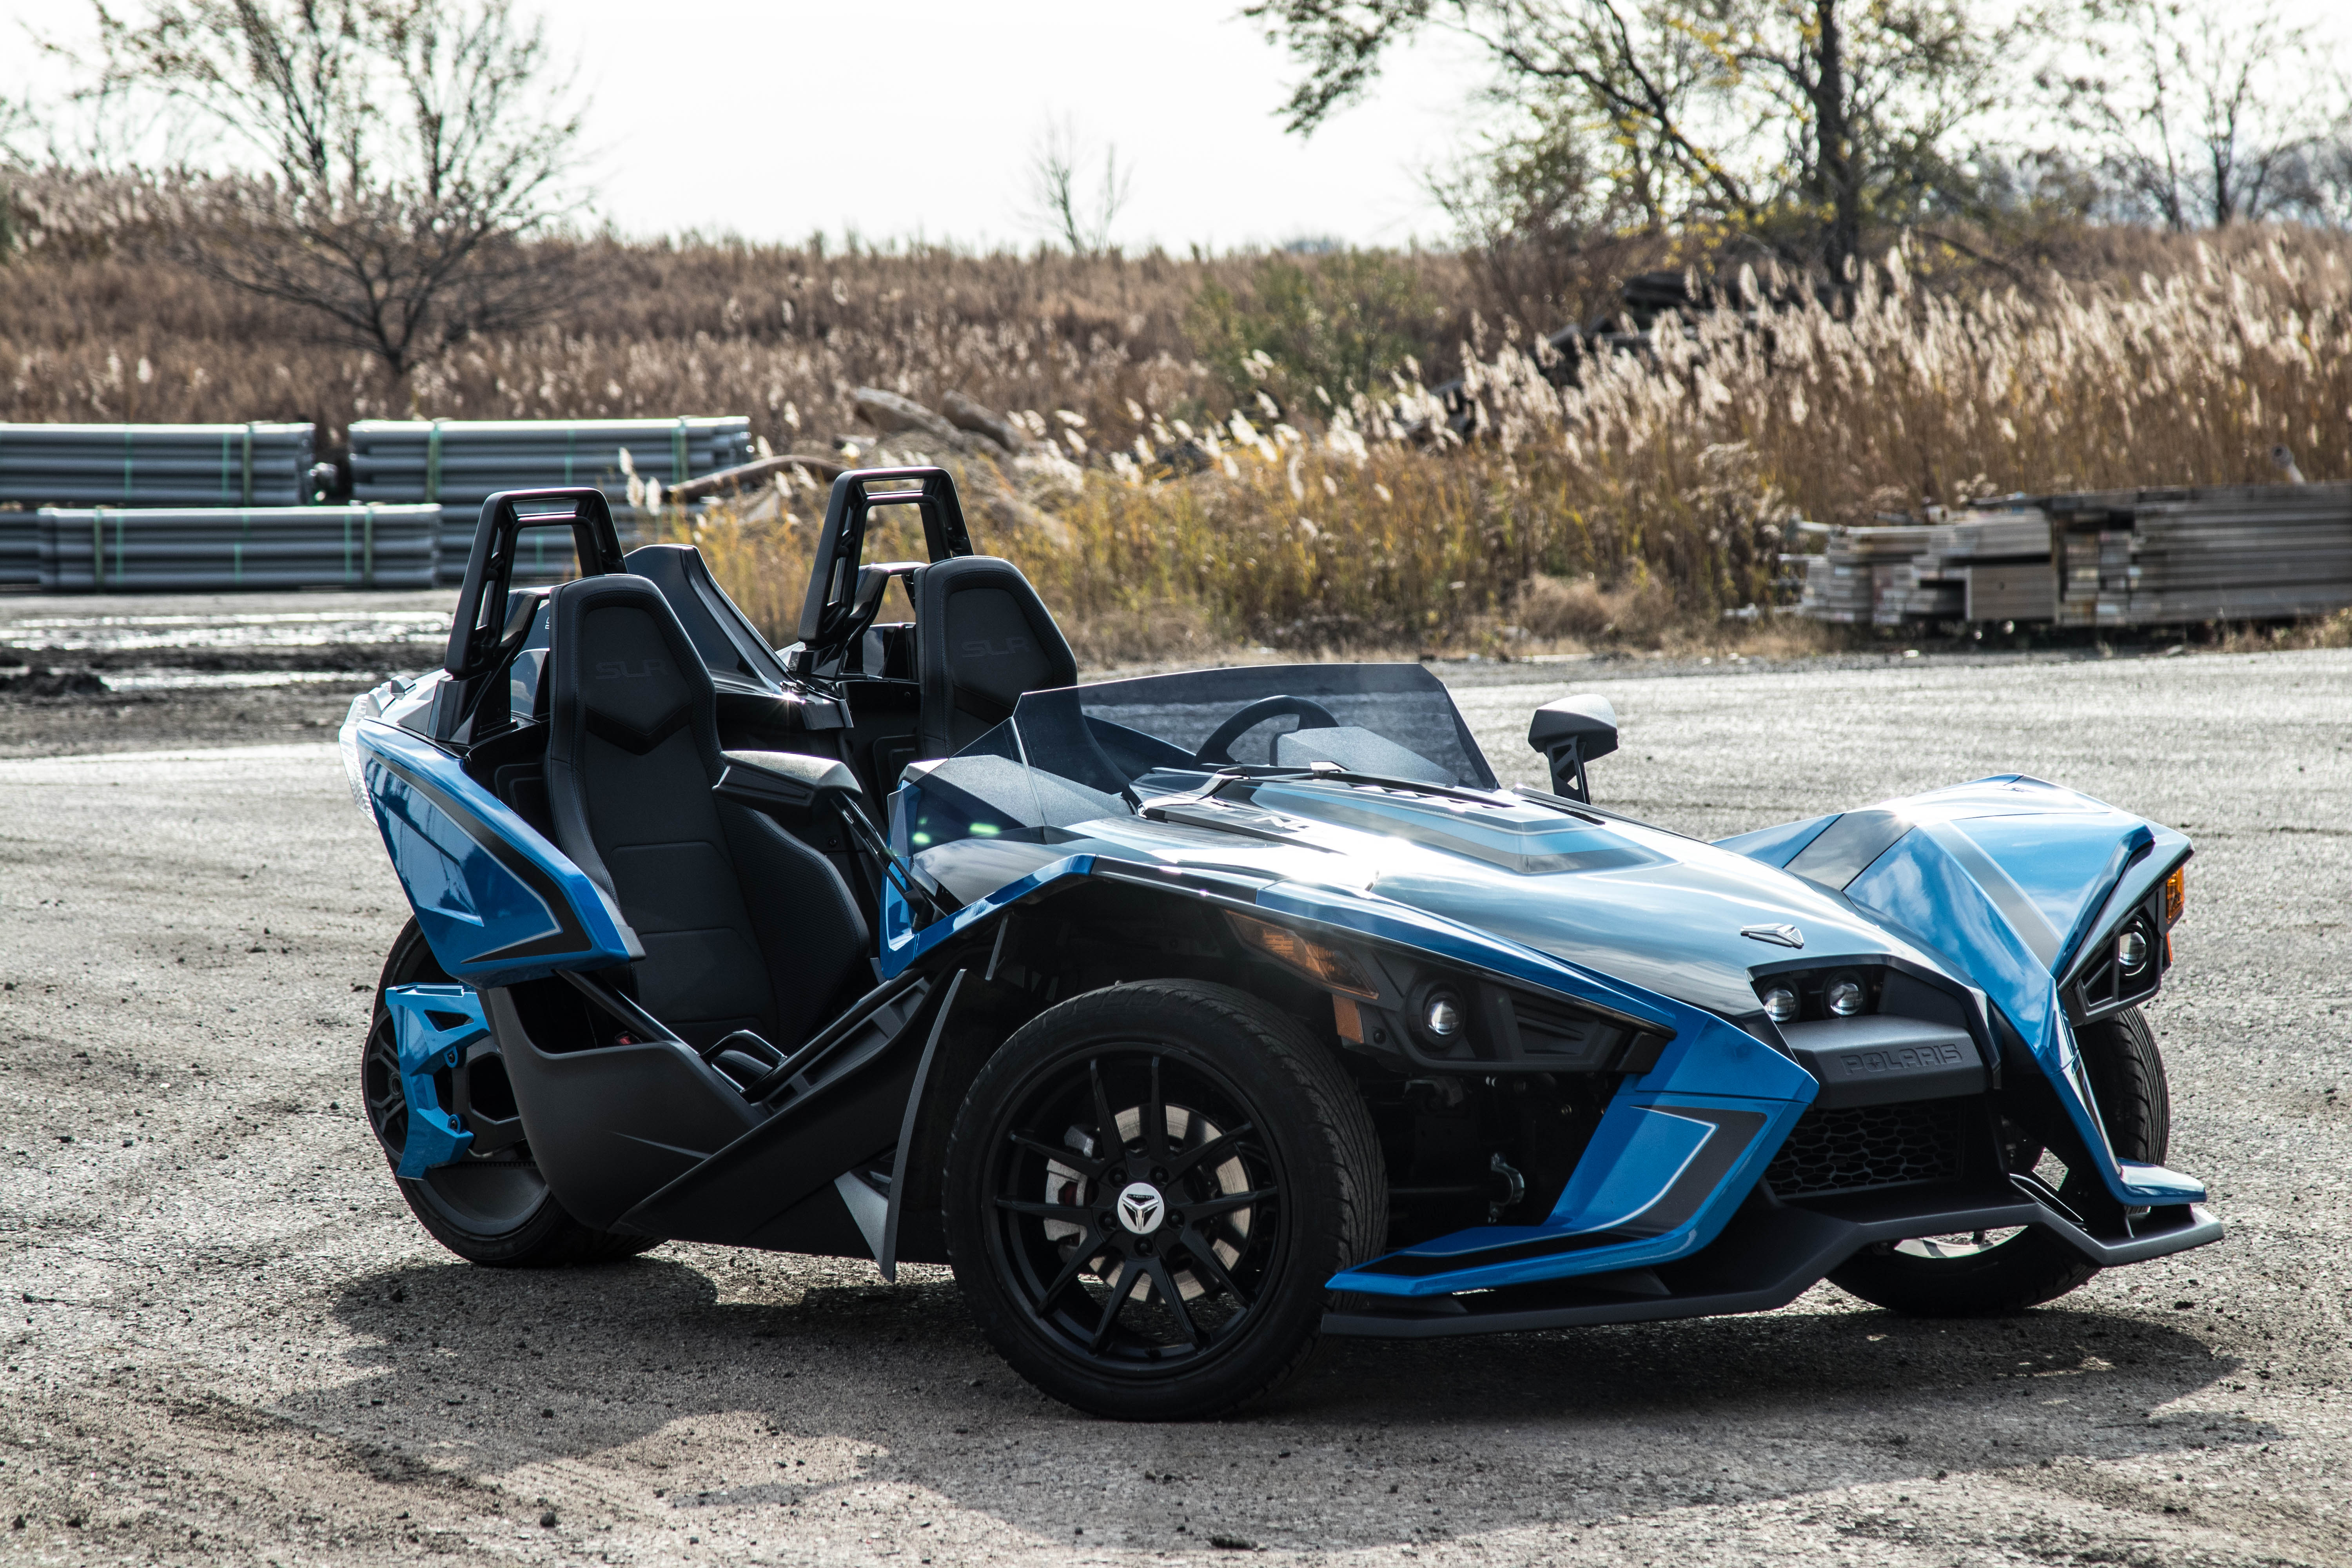 303ff712a7 Slingshot  Frequently Hooliganesque Driver answers Frequently Asked  Questions - RevZilla